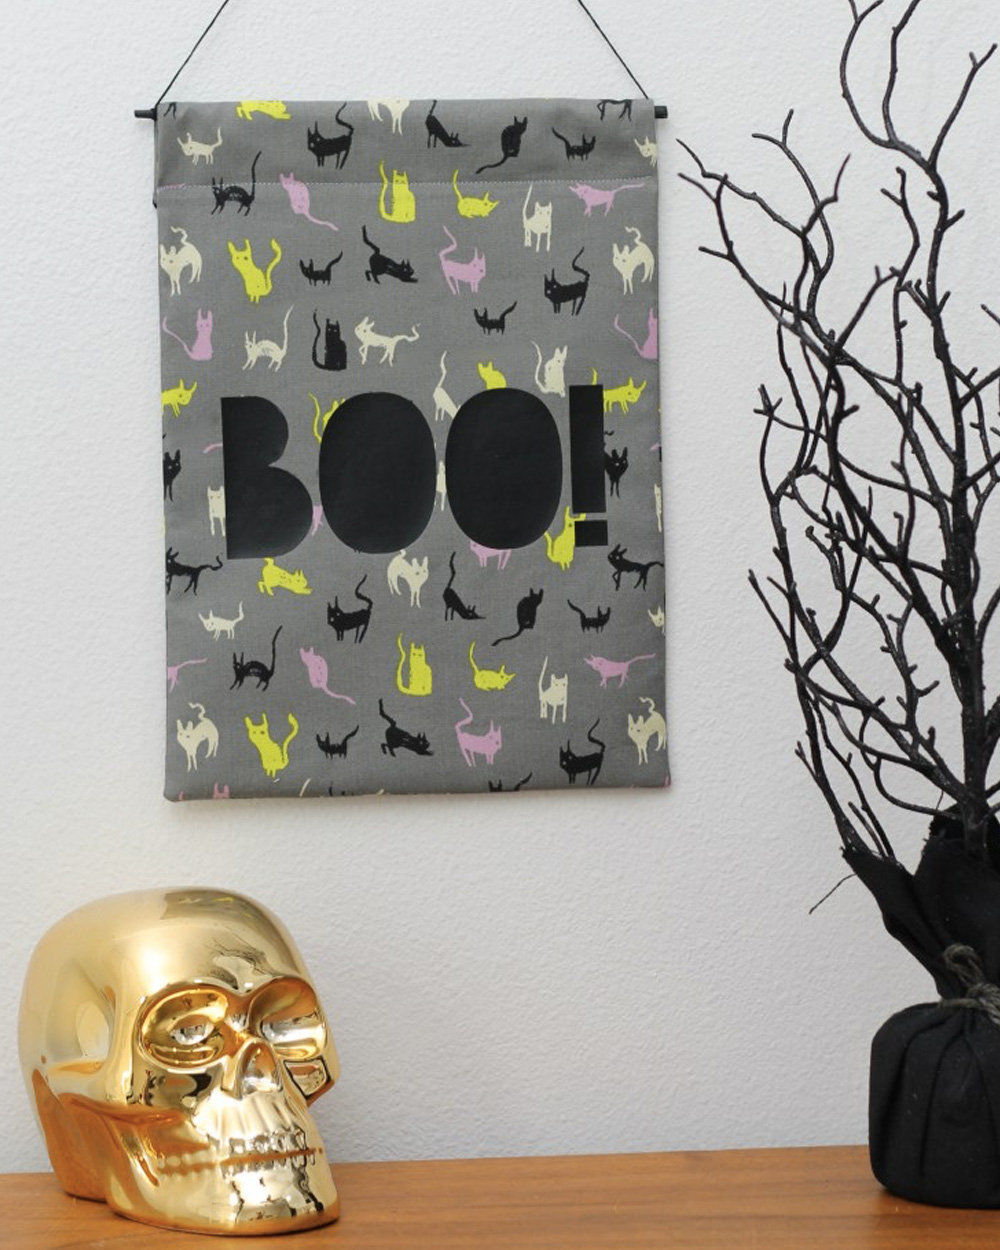 des id es de d coration pour halloween shake my blog. Black Bedroom Furniture Sets. Home Design Ideas